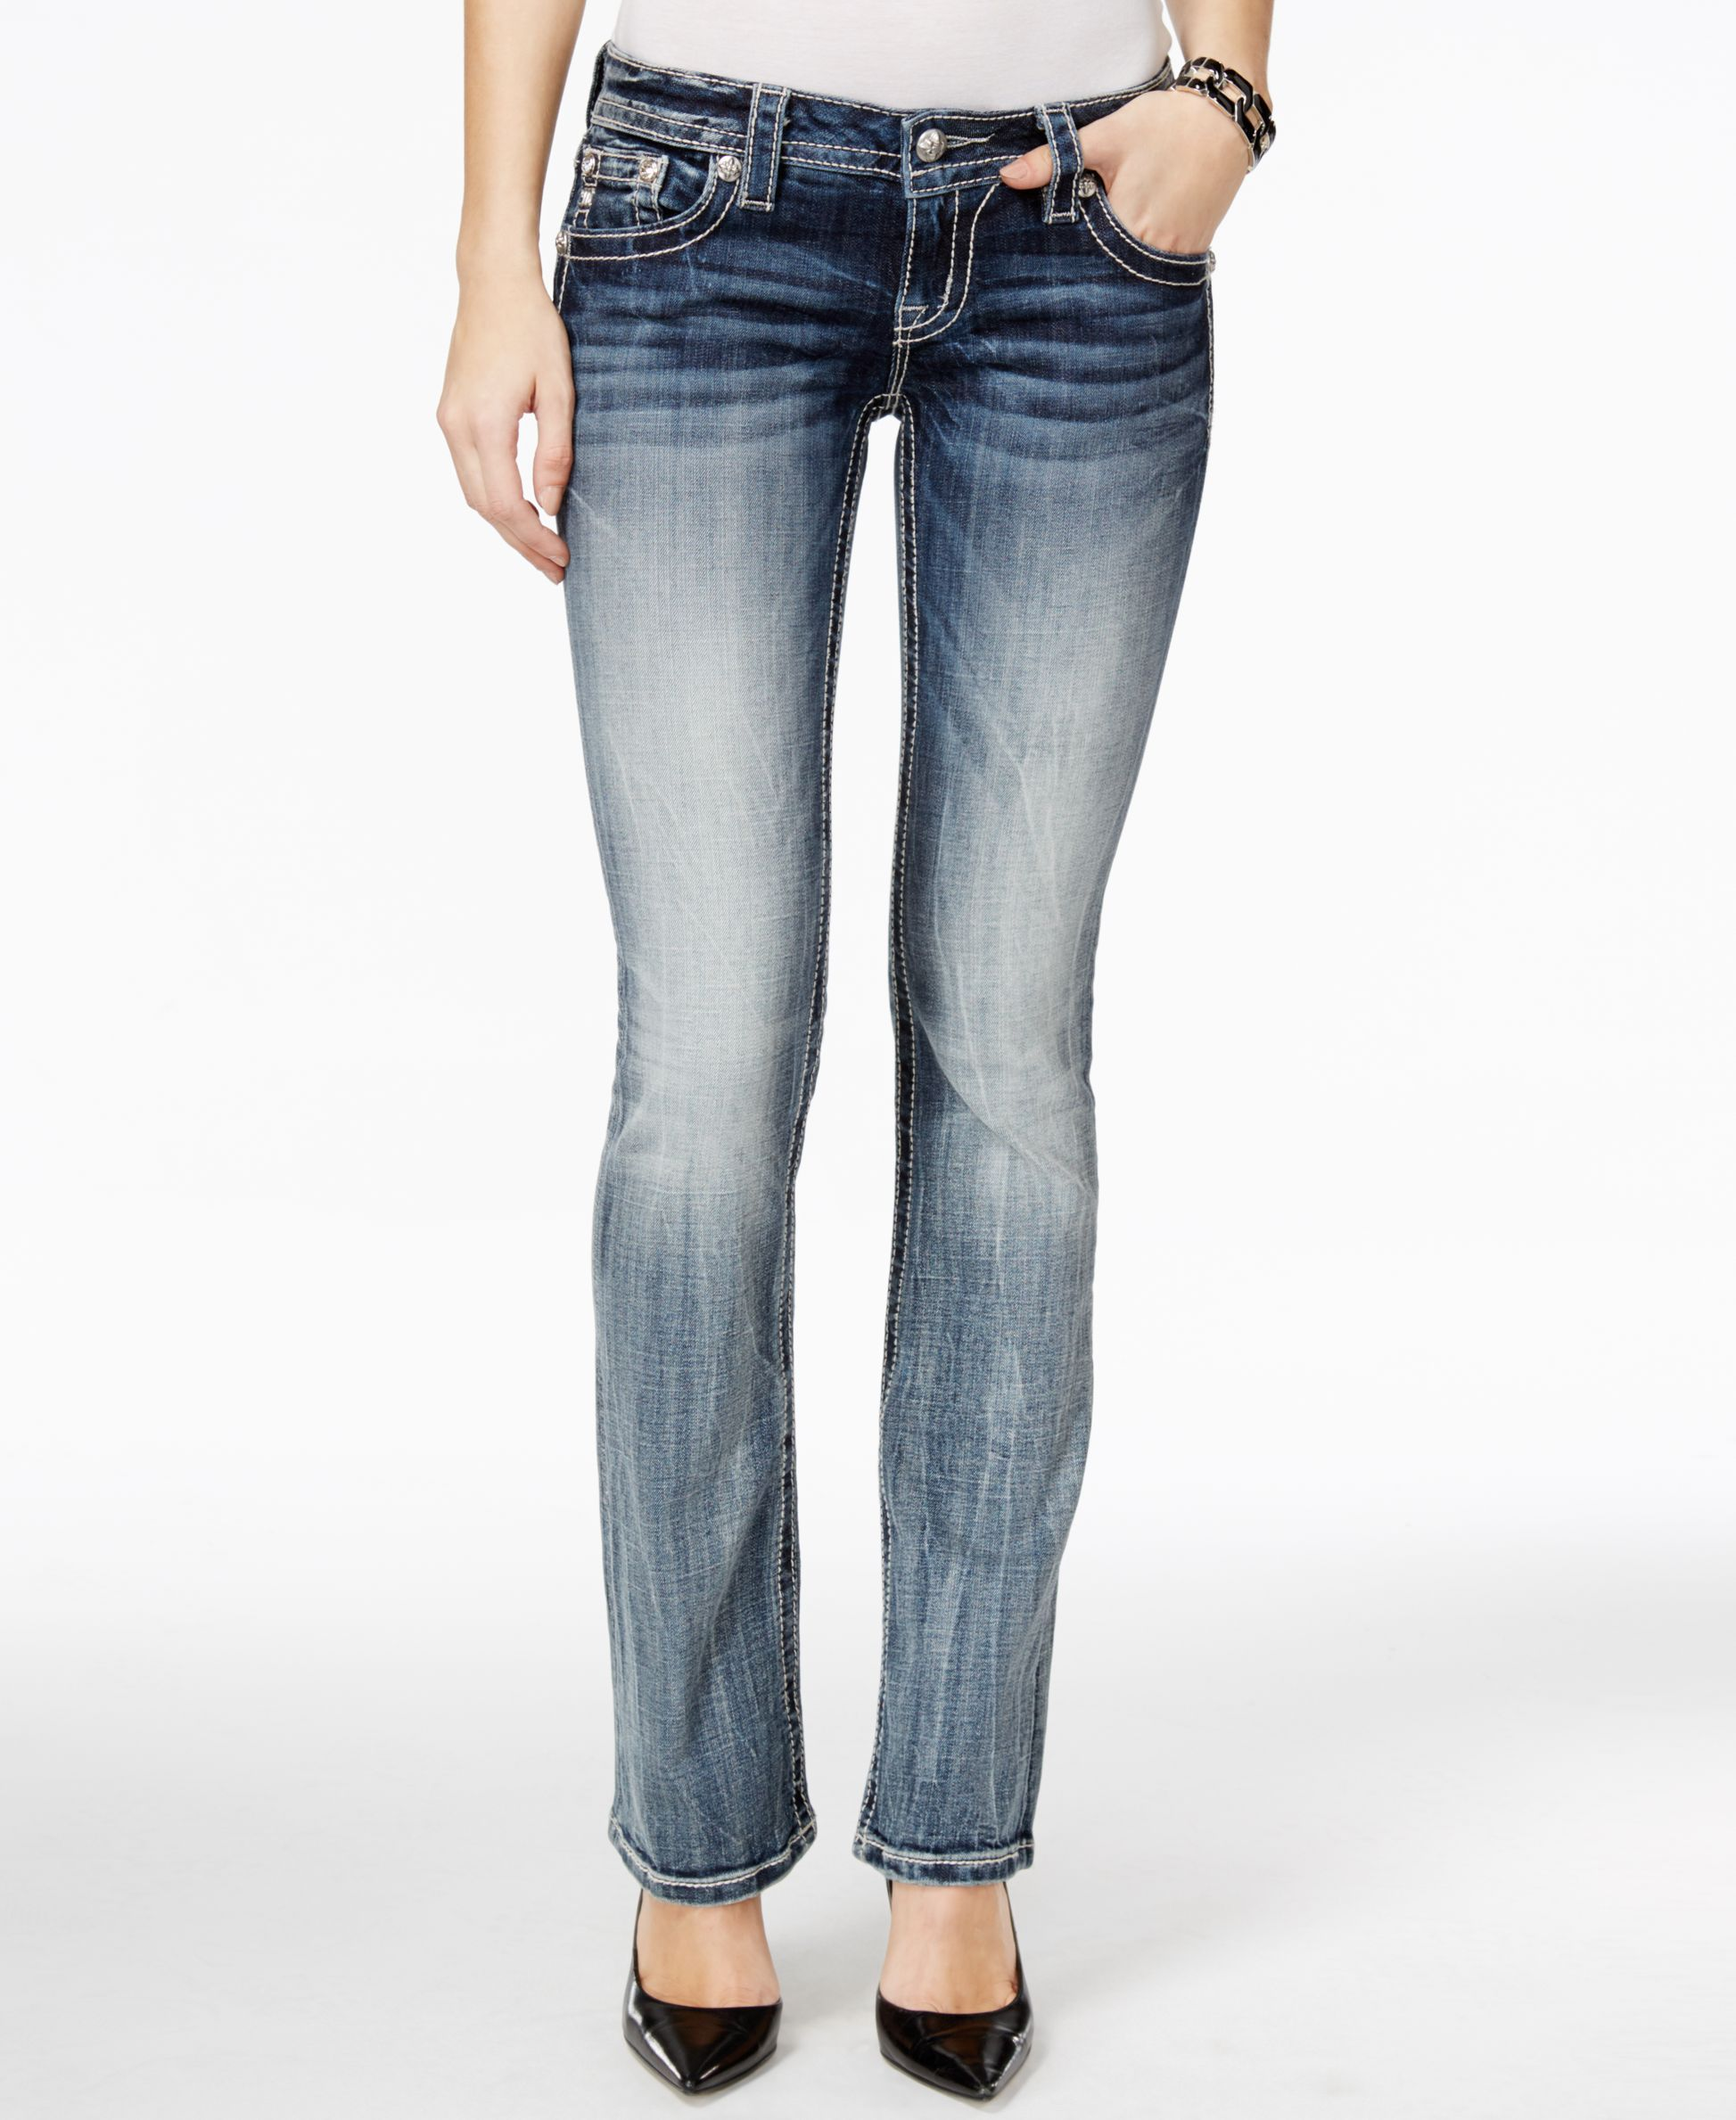 6a51bcb0b59 Miss Me Embellished Bootcut Medium Blue Wash Jeans | Products ...